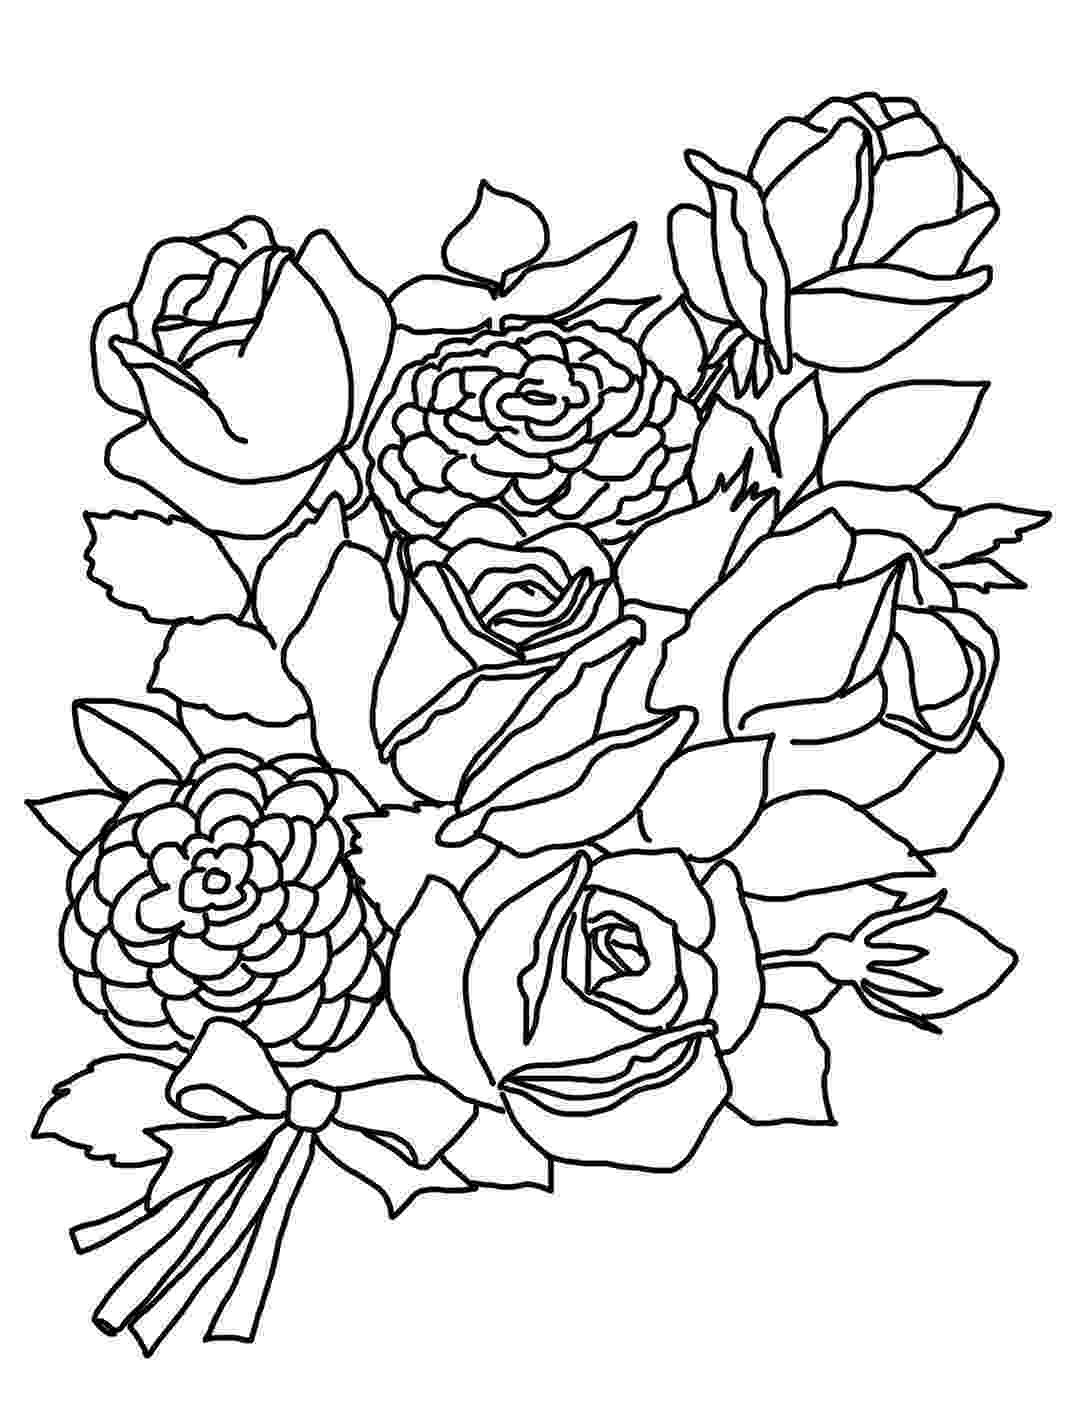 flower coloring book flower coloring pages coloring flower book 1 1